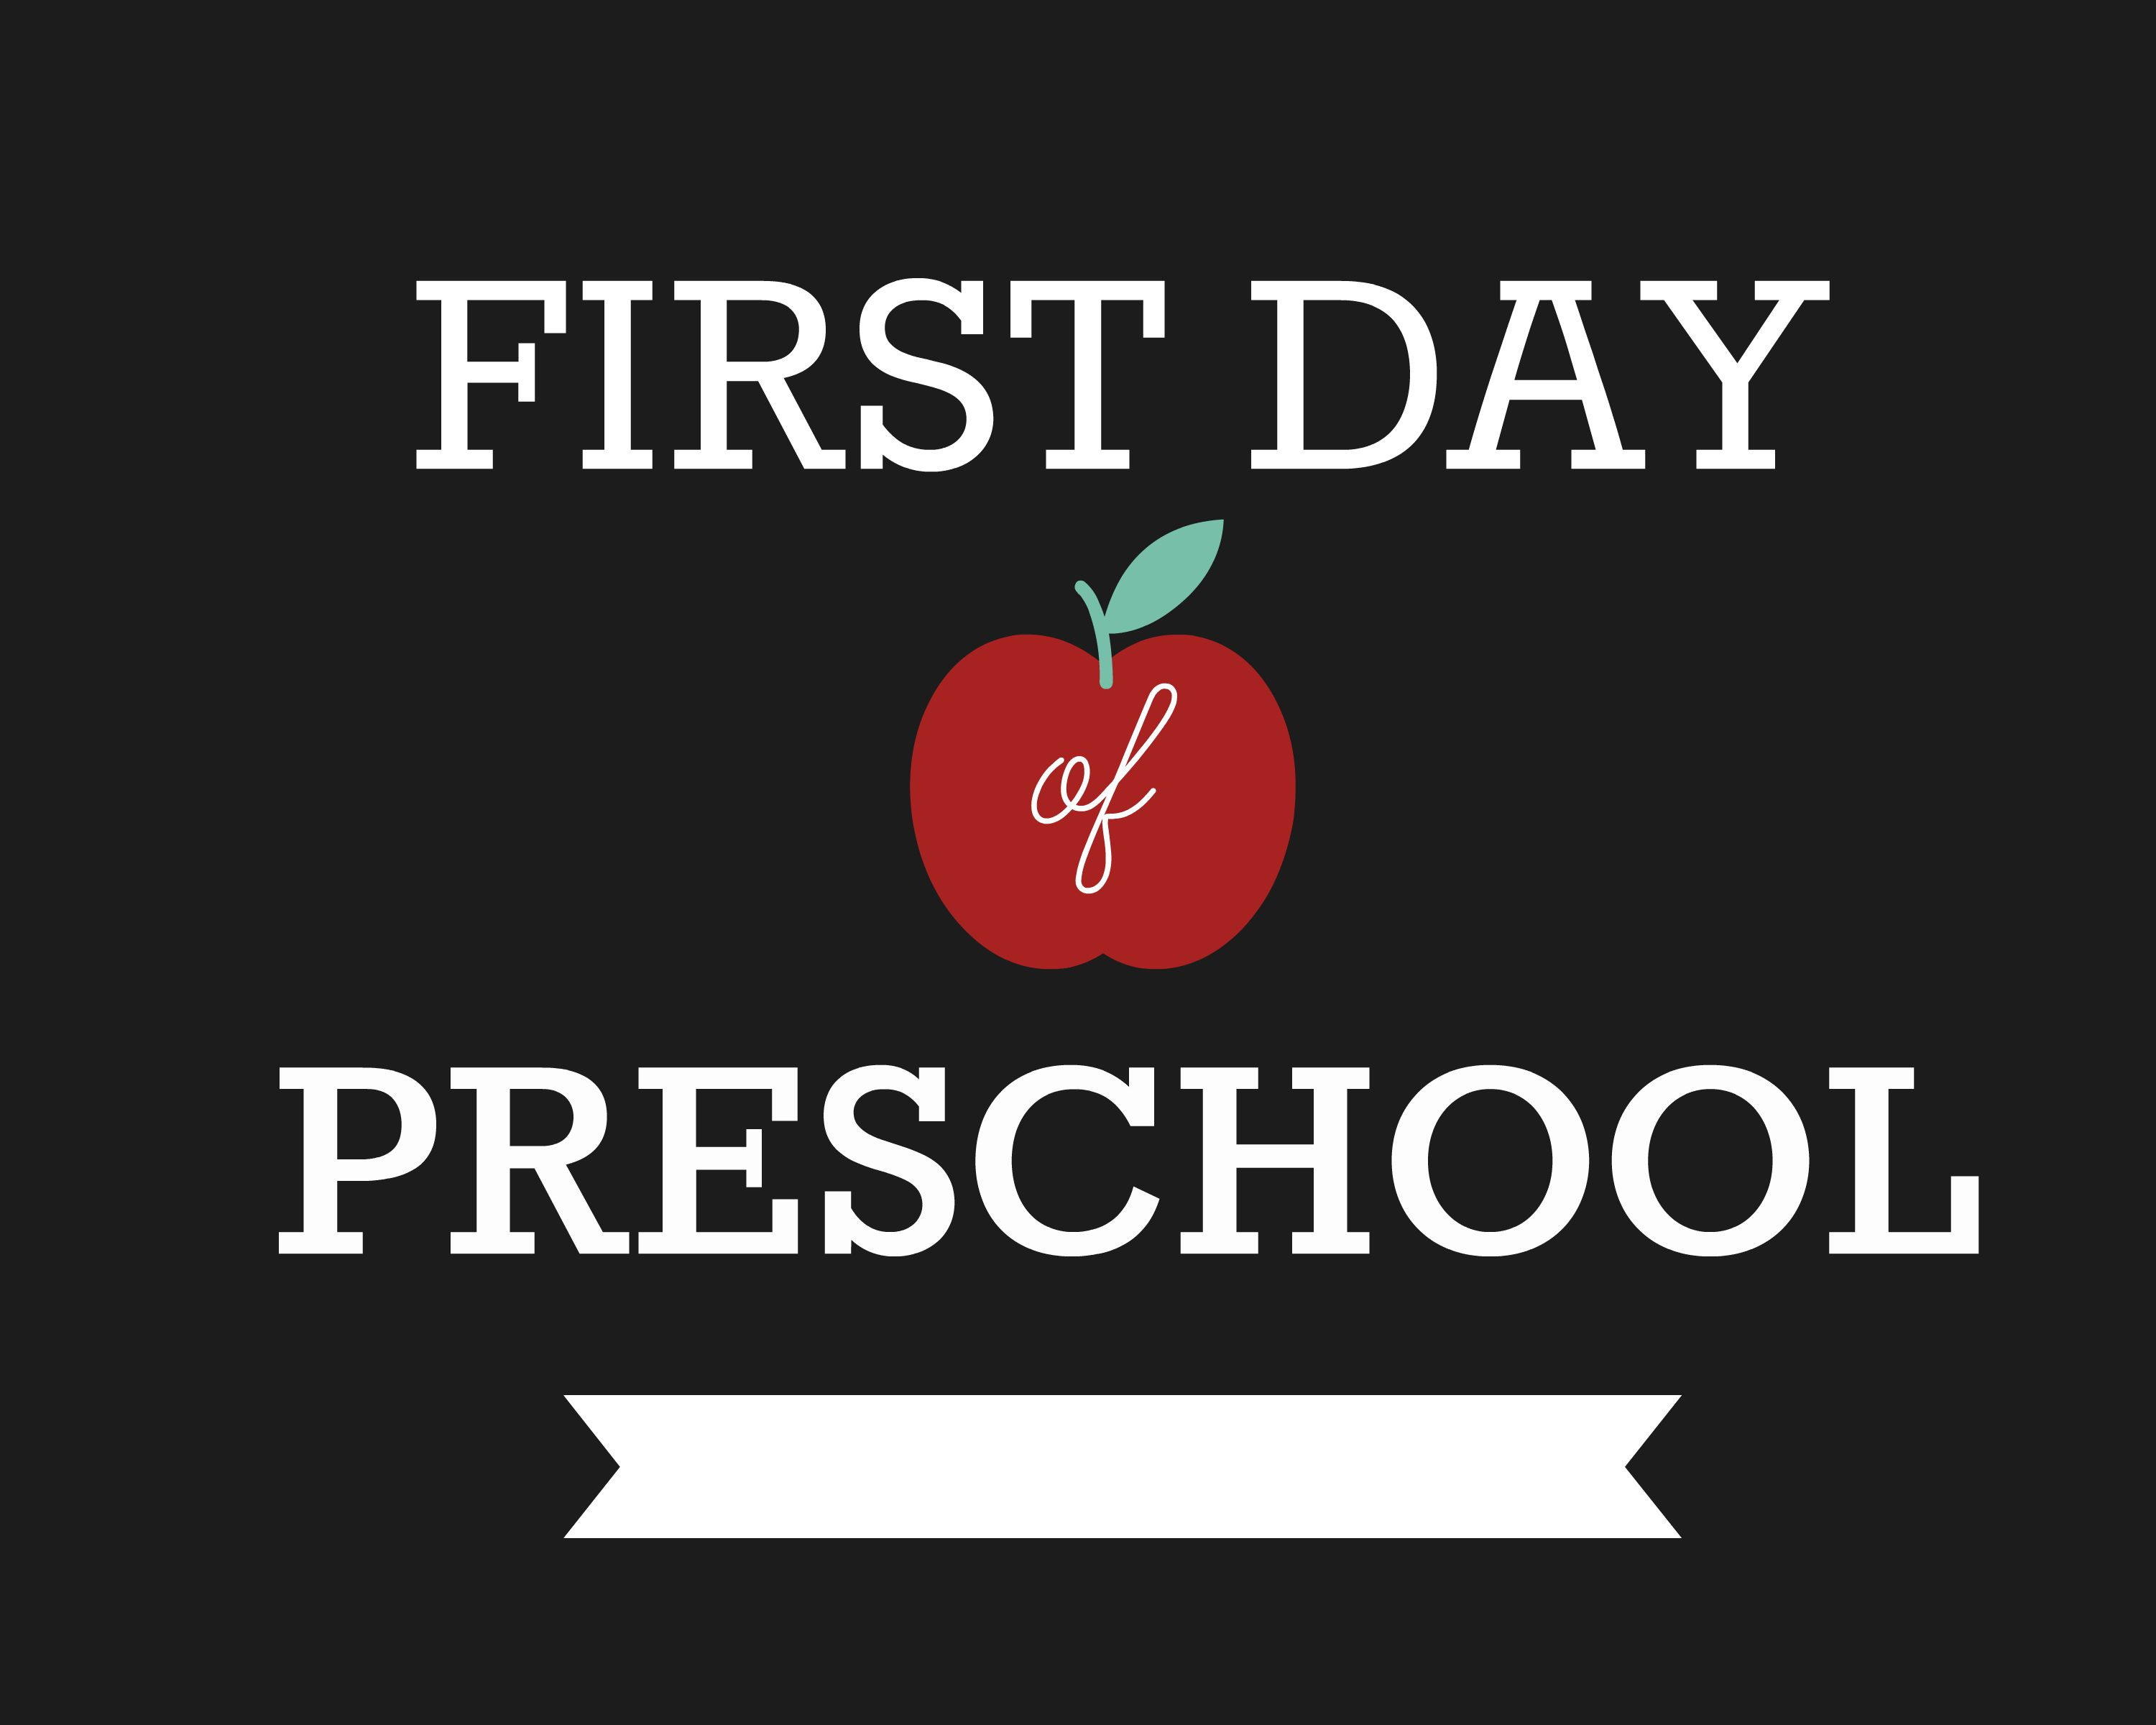 image about First Day of Preschool Free Printable named Do it yourself Initial Working day of Higher education Indicators Ruler Craft - Pre-K up in direction of